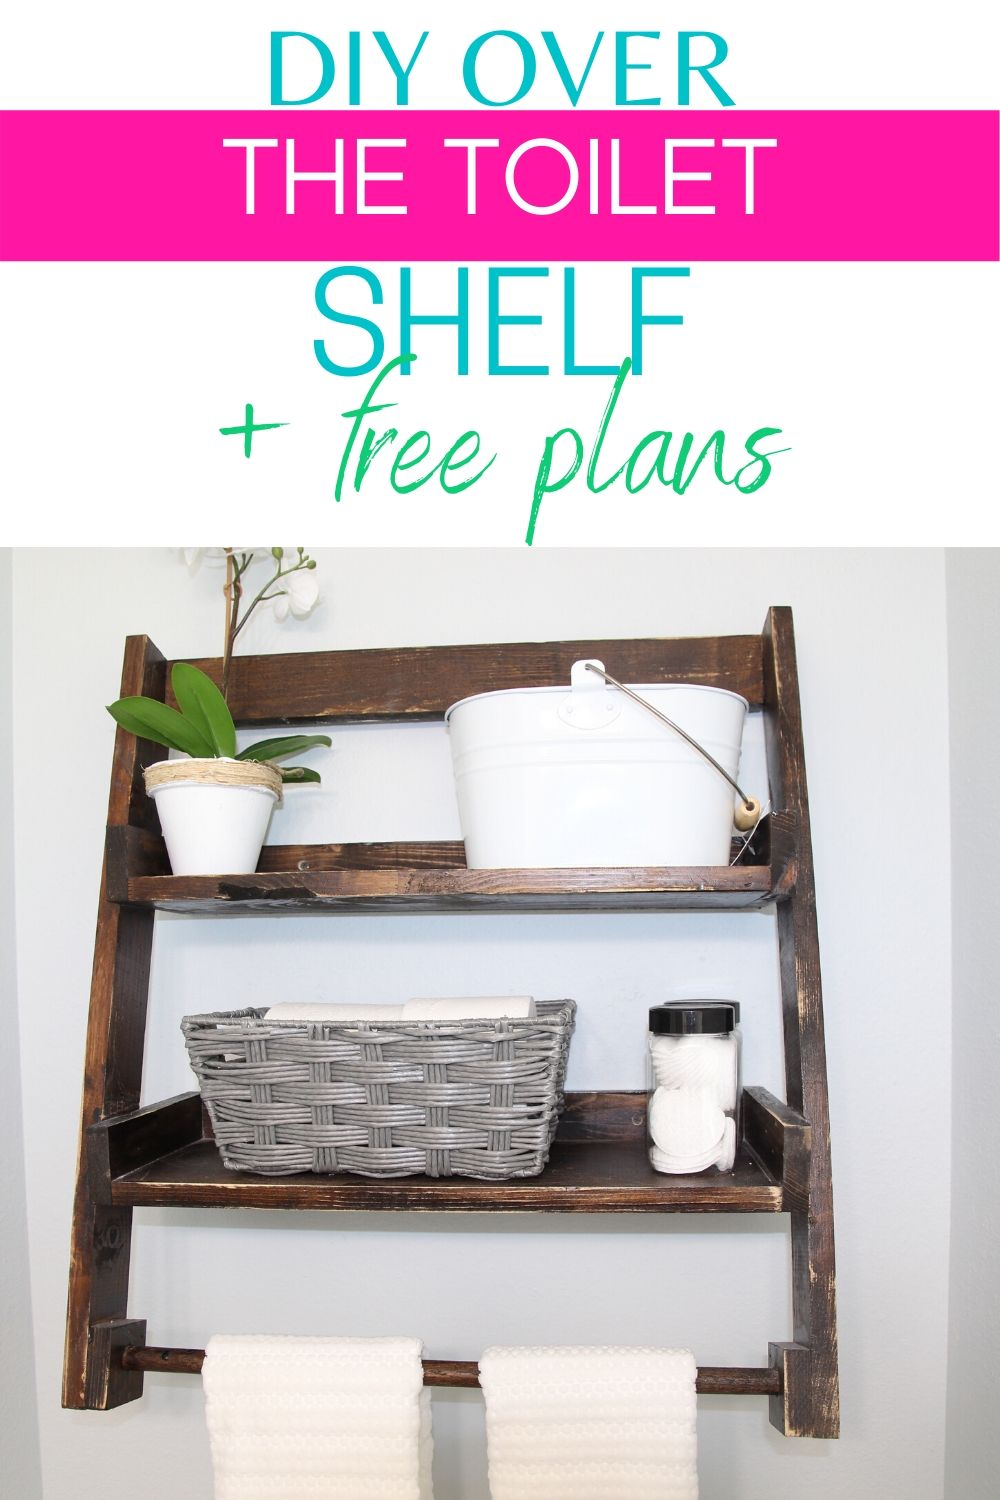 Perfect beginner diy woodworking project. Add much needed storage to your small bathroom with this over the toilet shelf. #diy #diyproject #woodworking #smallspace #smallbathroom #bathroom #bathroomorganization #smallbathroomorganization via @homebyjenn